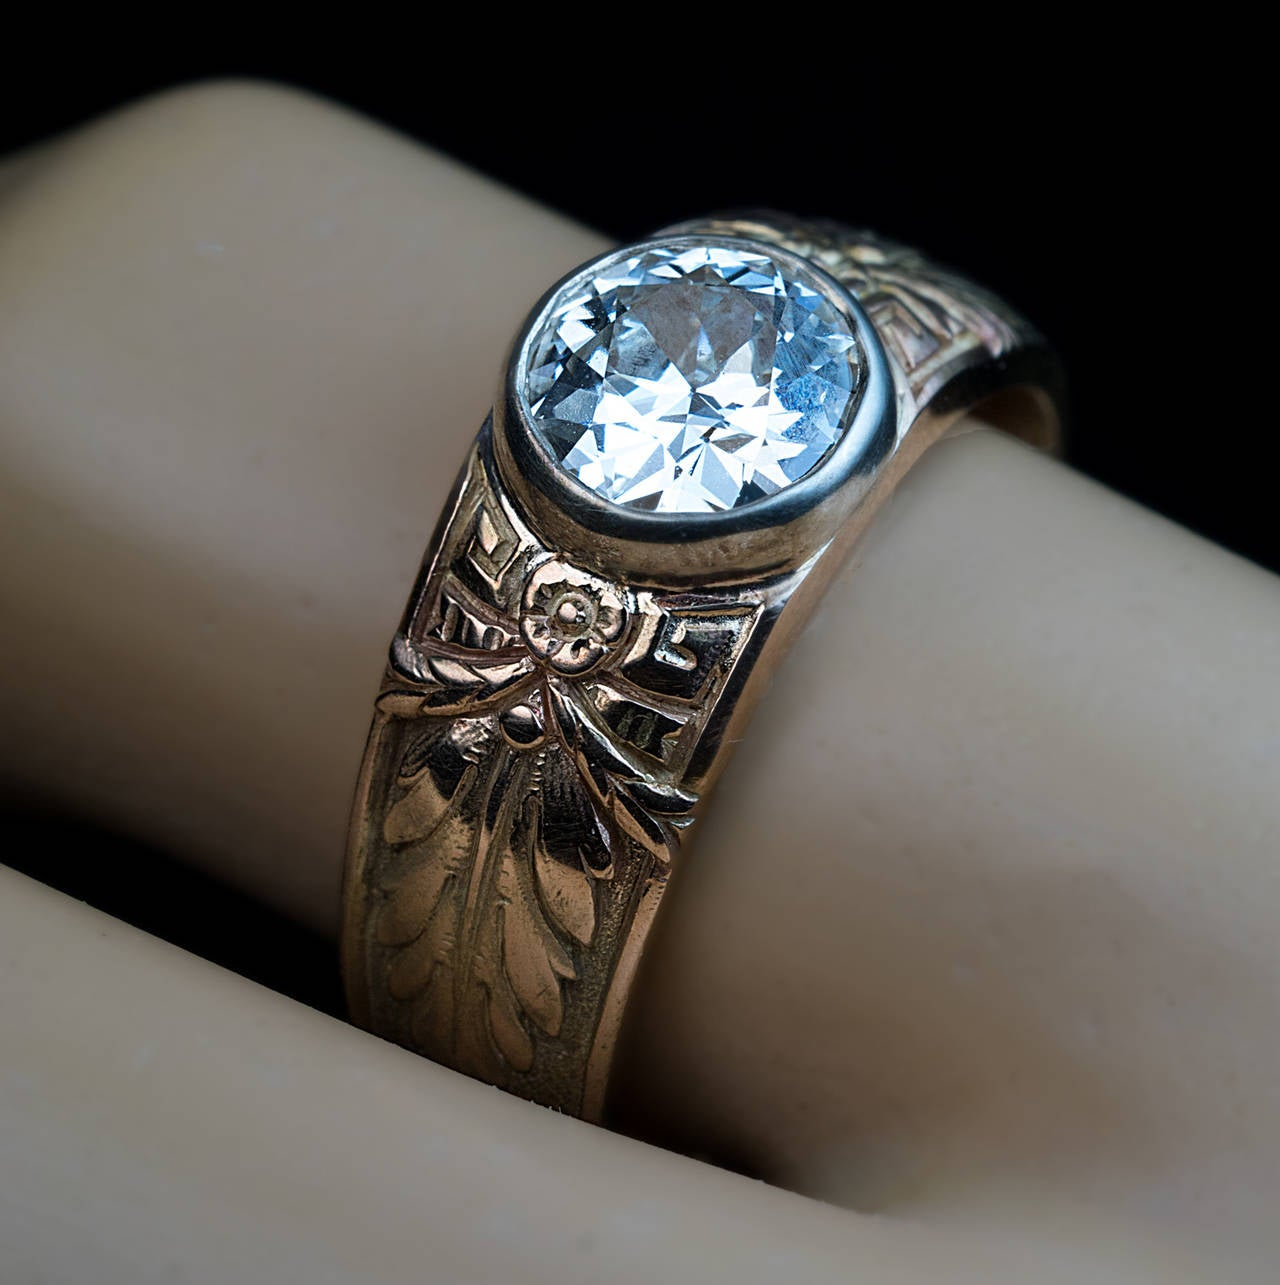 Antique Russian 1 Carat Diamond Gold Men's Ring In Excellent Condition For Sale In Chicago, IL